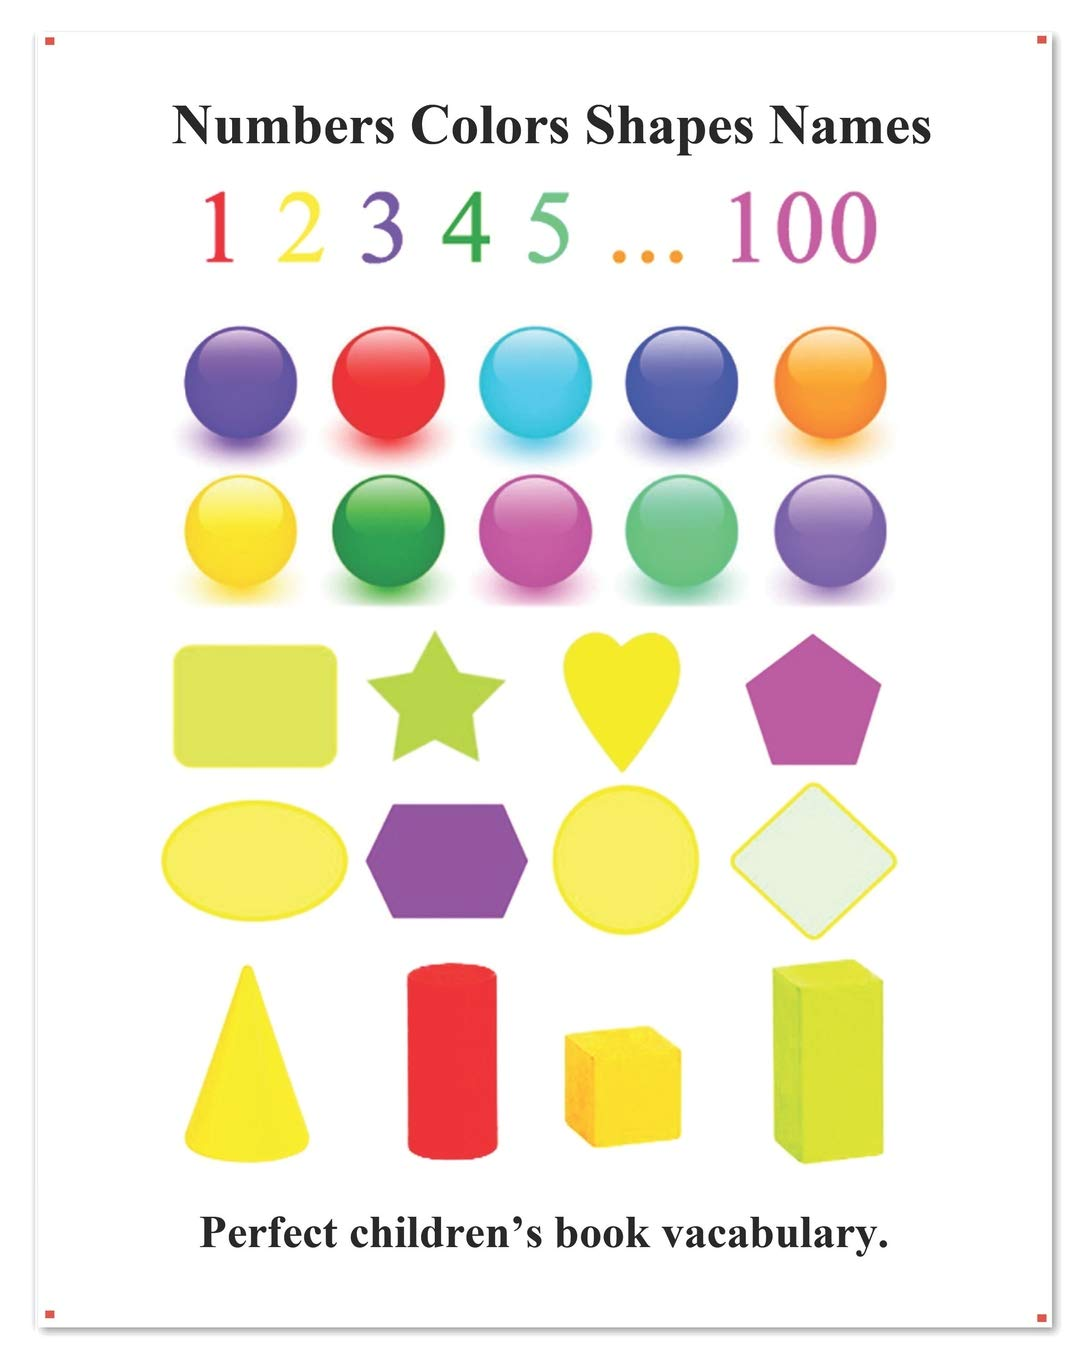 Numbers Colors Shapes Names: Picture 100 Numbers Colors ...